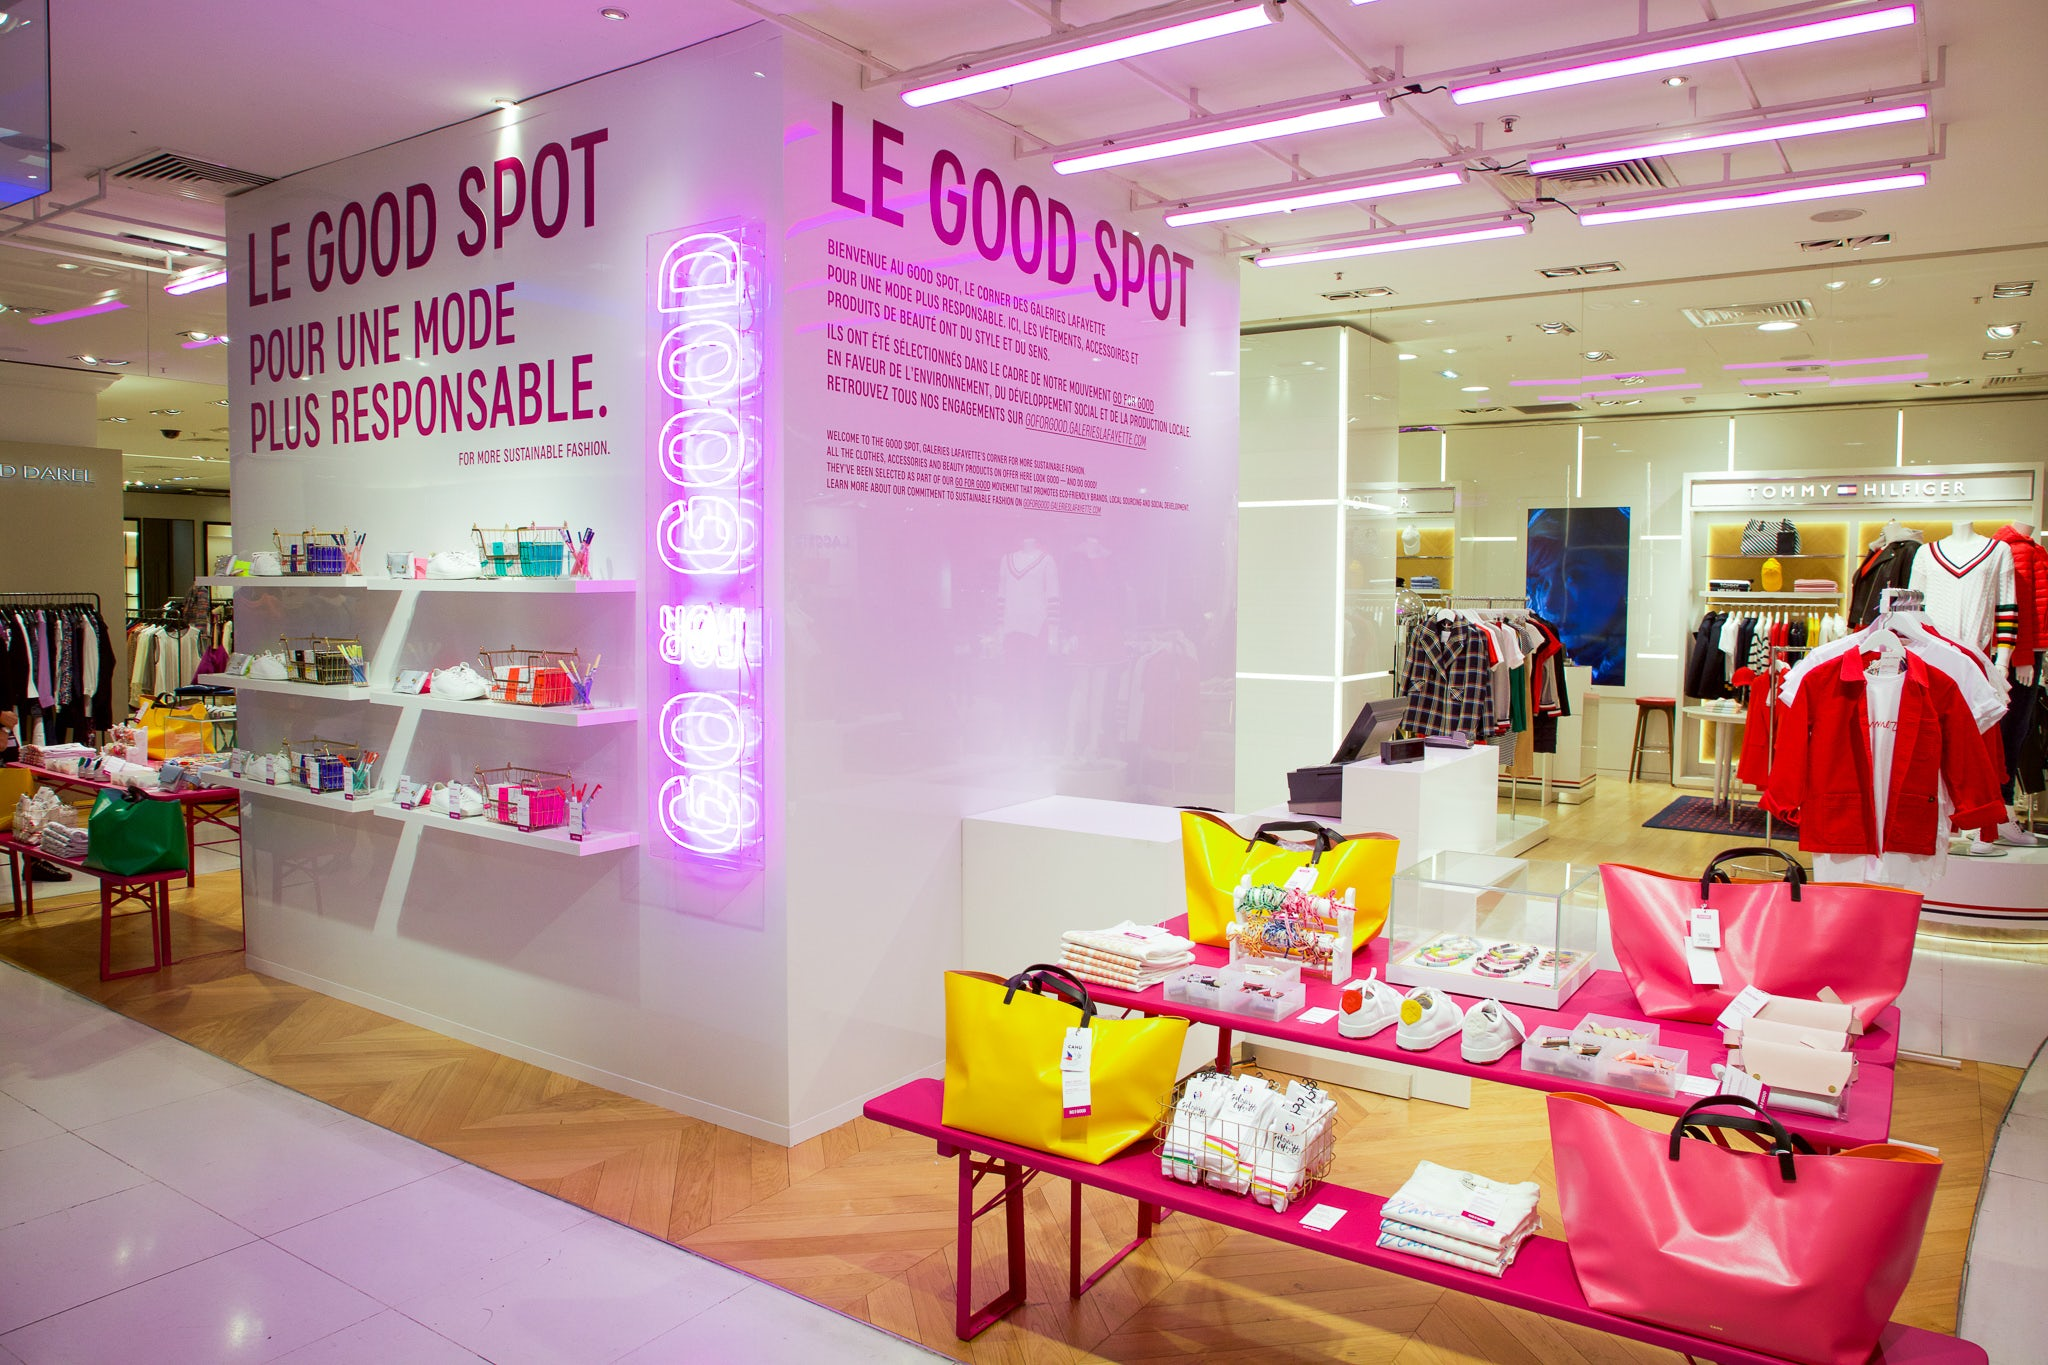 Galeries Lafayette's showcase of sustainable products in its Boulevard Haussman store in Paris   Source: Courtesy